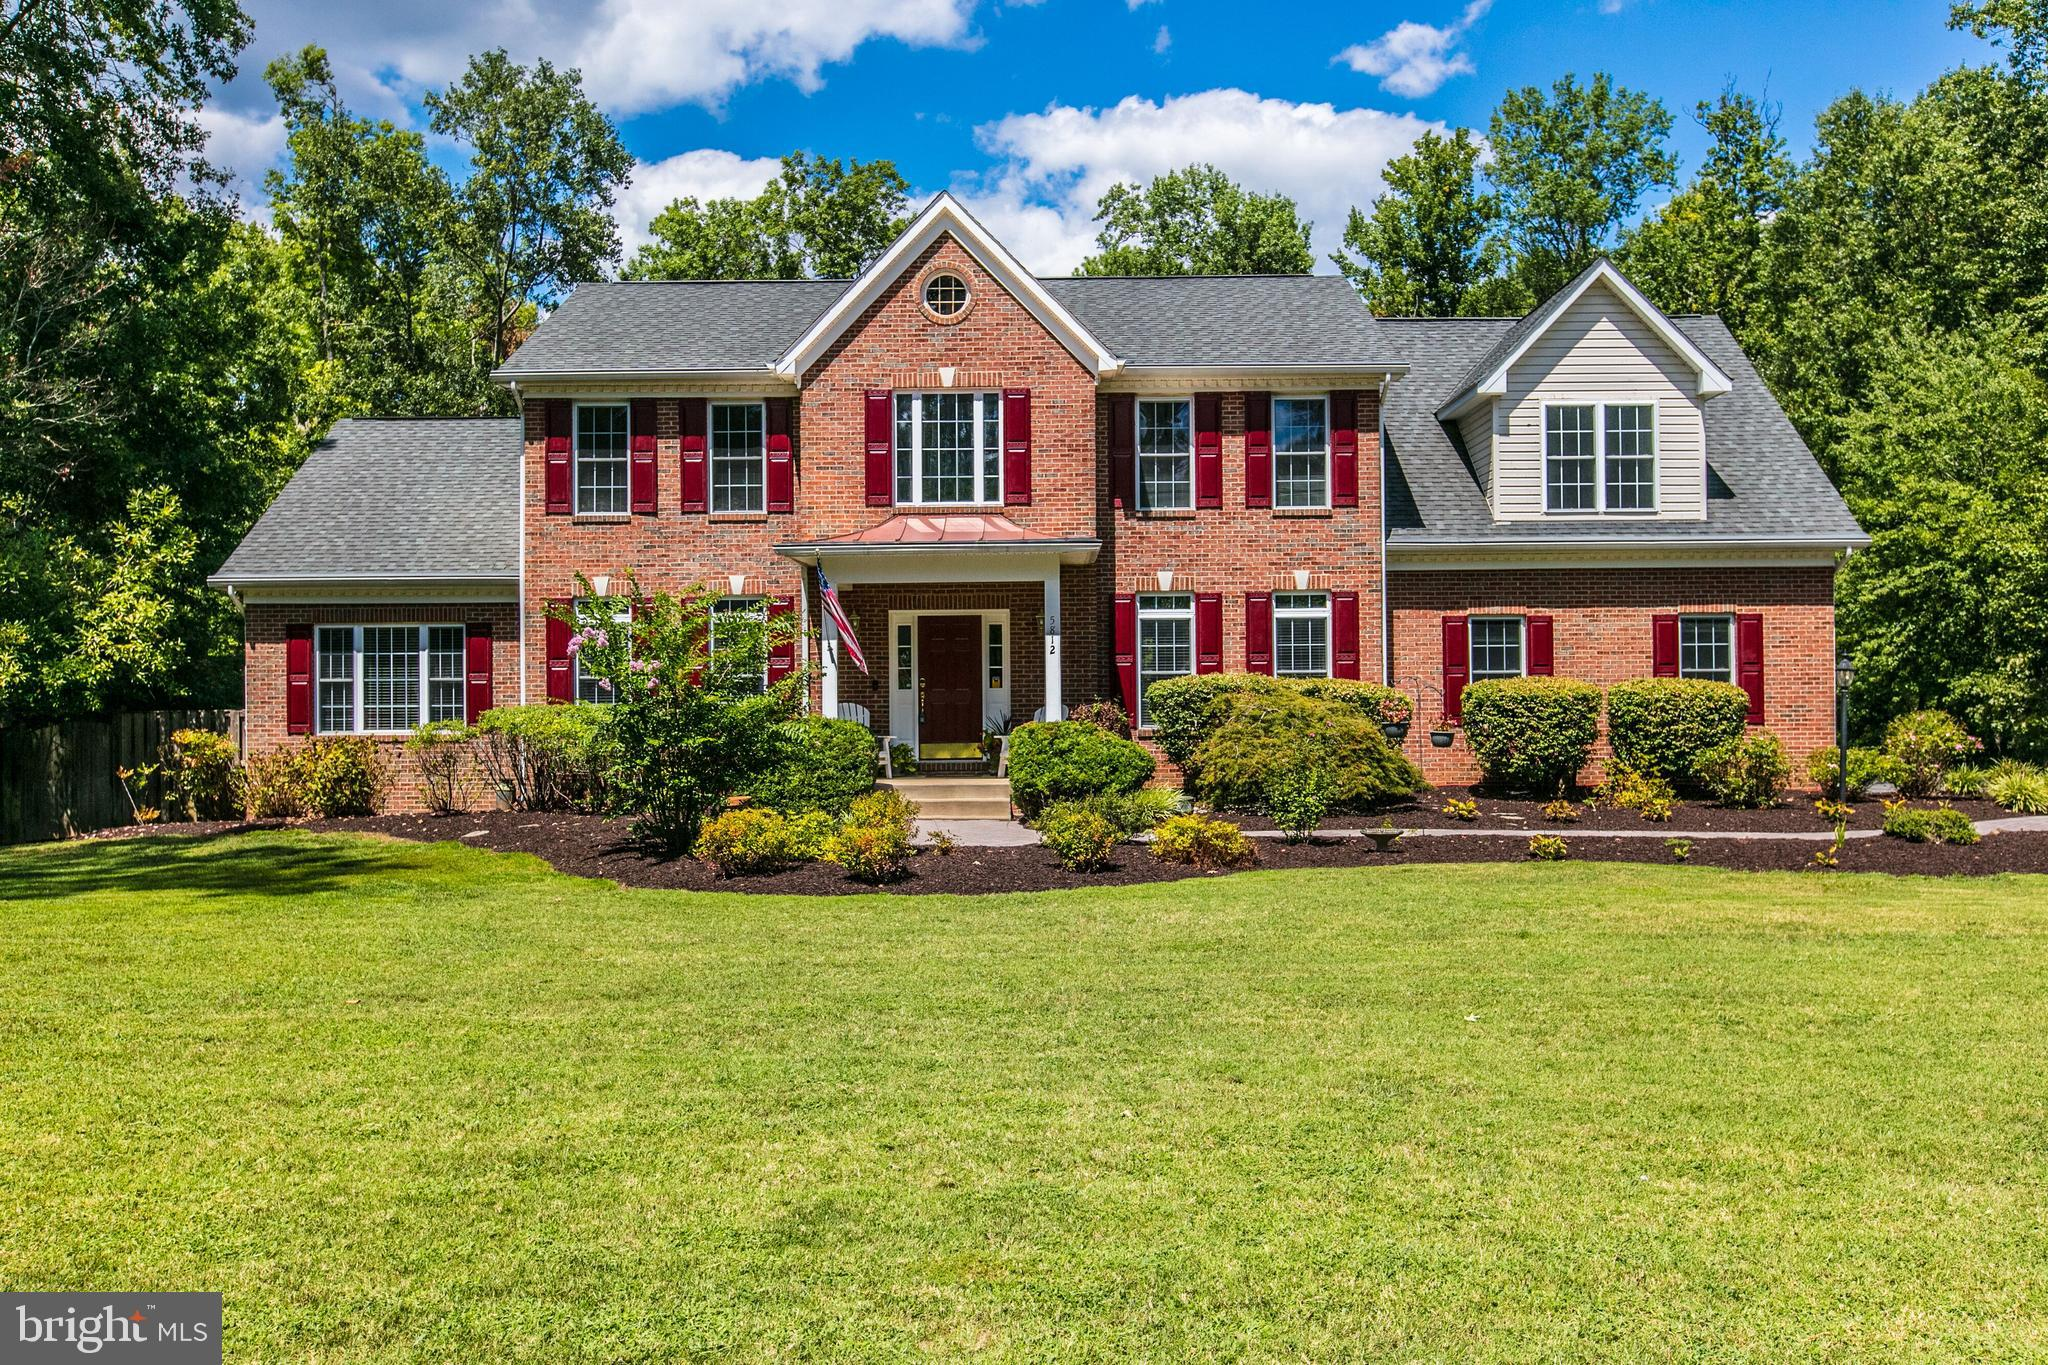 OPEN HOUSE SUN 9/22 1-4PM.   SO many great features in this expanded colonial for you (and your guests) to enjoy!  Nearly 6000 finished SF including a recently-completed lower level with 5th bedroom, full bathroom, custom bar, and space for entertaining.  Open floor plan has welcoming 2-story foyer, separate living and dining rooms, a HUGE family room w/gas fireplace, large gourmet kitchen w/island, and main level private office. Upstairs are 2 master suites with vaulted ceilings, two generous-size bedrooms, and laundry room. OUTSTANDING 1.25 acre lot has well-landscaped and fenced yard with multi-level decks, pool, hot tub, screened-in garden, tree house and more.  LOTS of open space.  3-car side-load garage, mud room, 2 storage sheds and lots of space for your water toys!  Private setting in desirable community w/access to private beach, boat launch, playground, & tennis/BB courts.  So close to all that historic Mason Neck has to offer - Potomac River access, parks, wildlife, golf, and much more.  This one has so much to offer...at a great value!